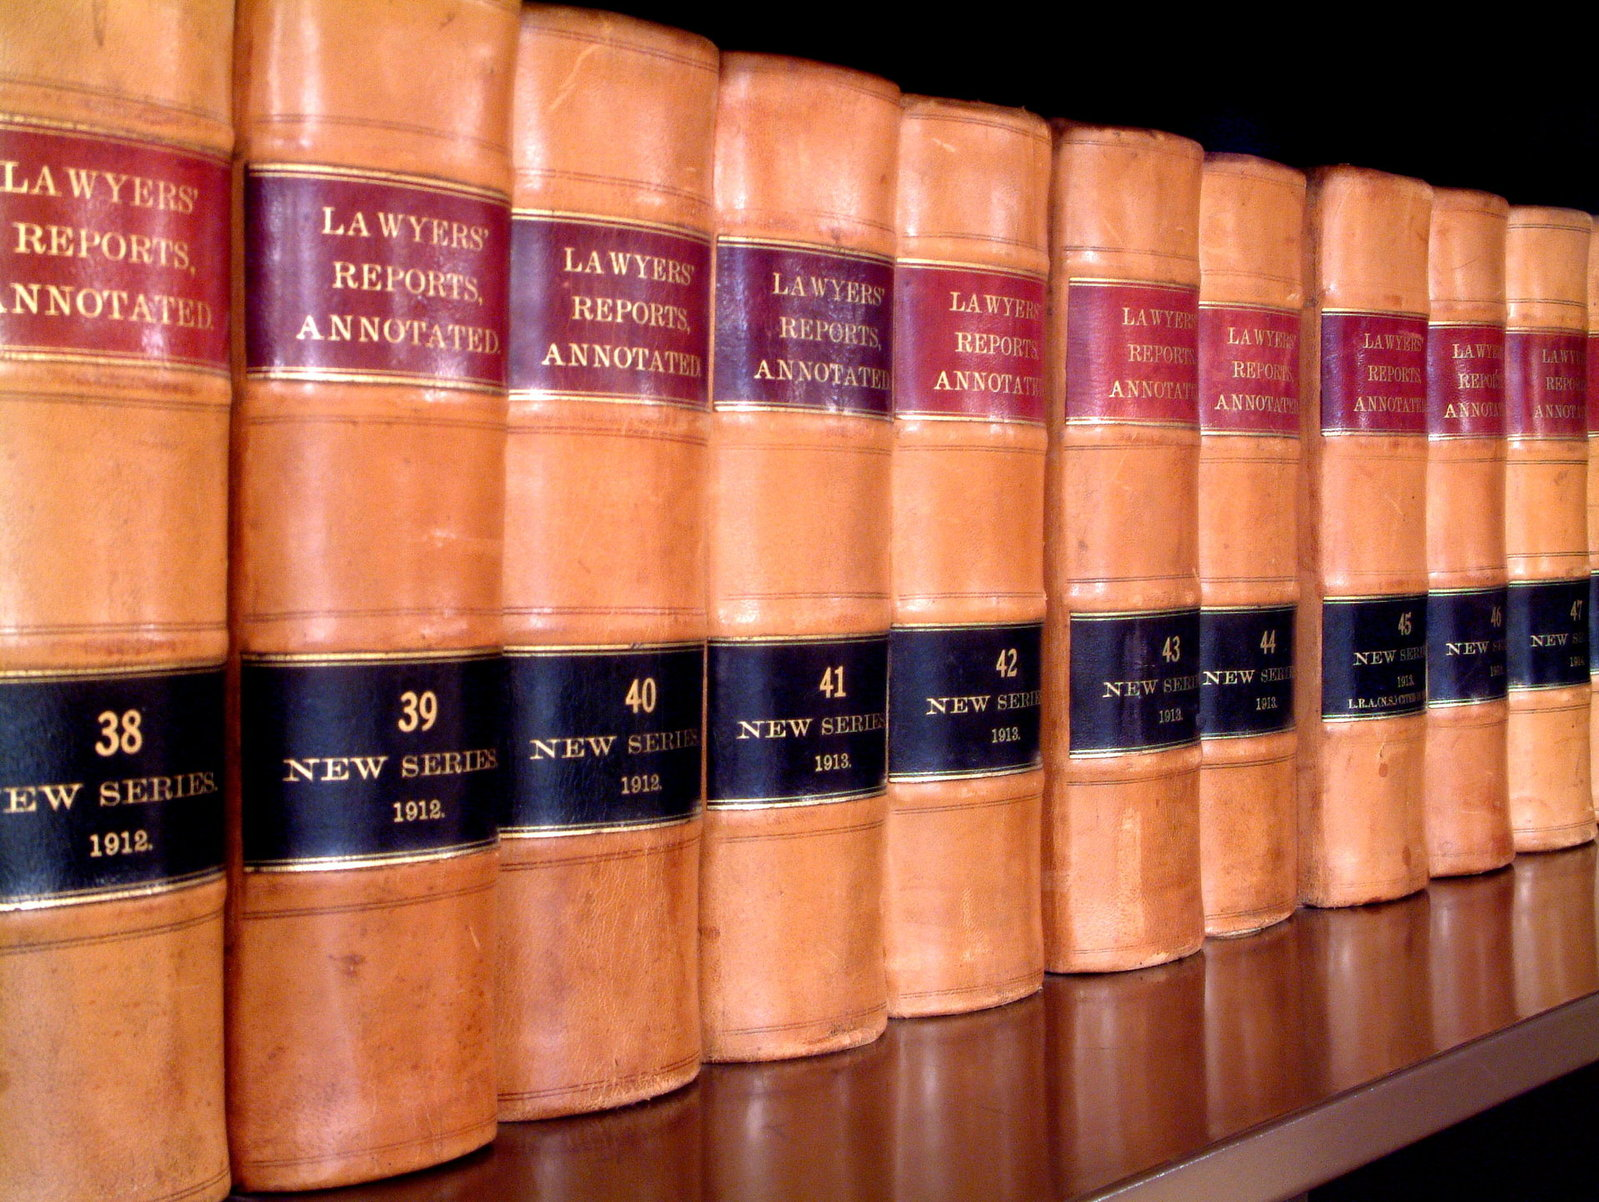 law-education-series-3-1467430-1599x1201.jpg